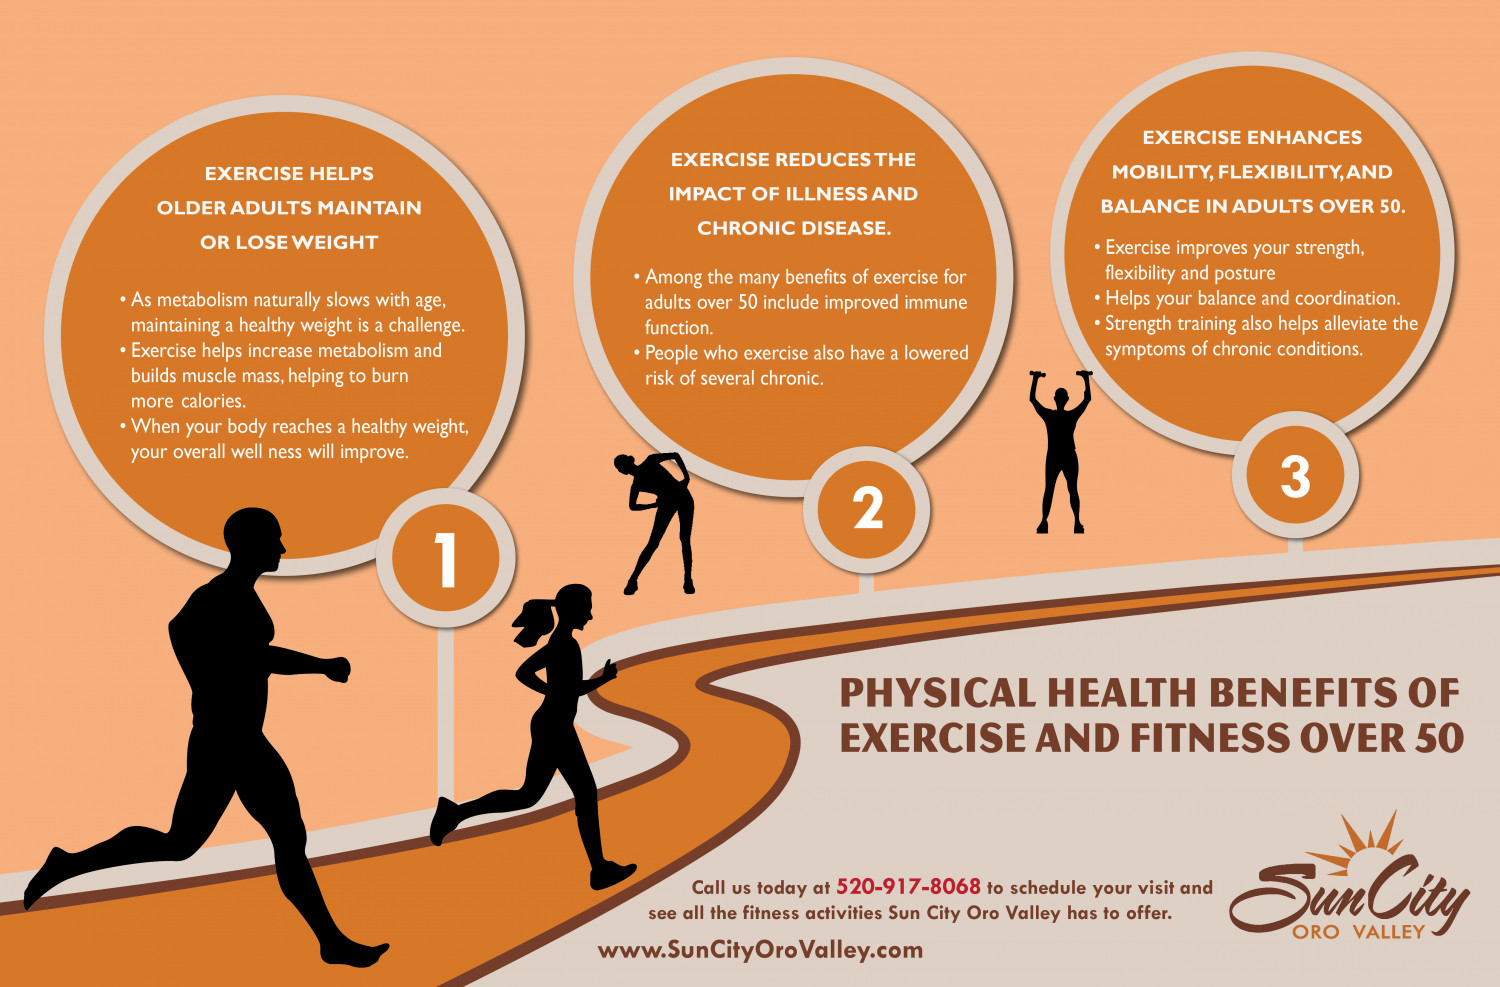 Physical Health Benefits Of Exercise And Fitness Over 50